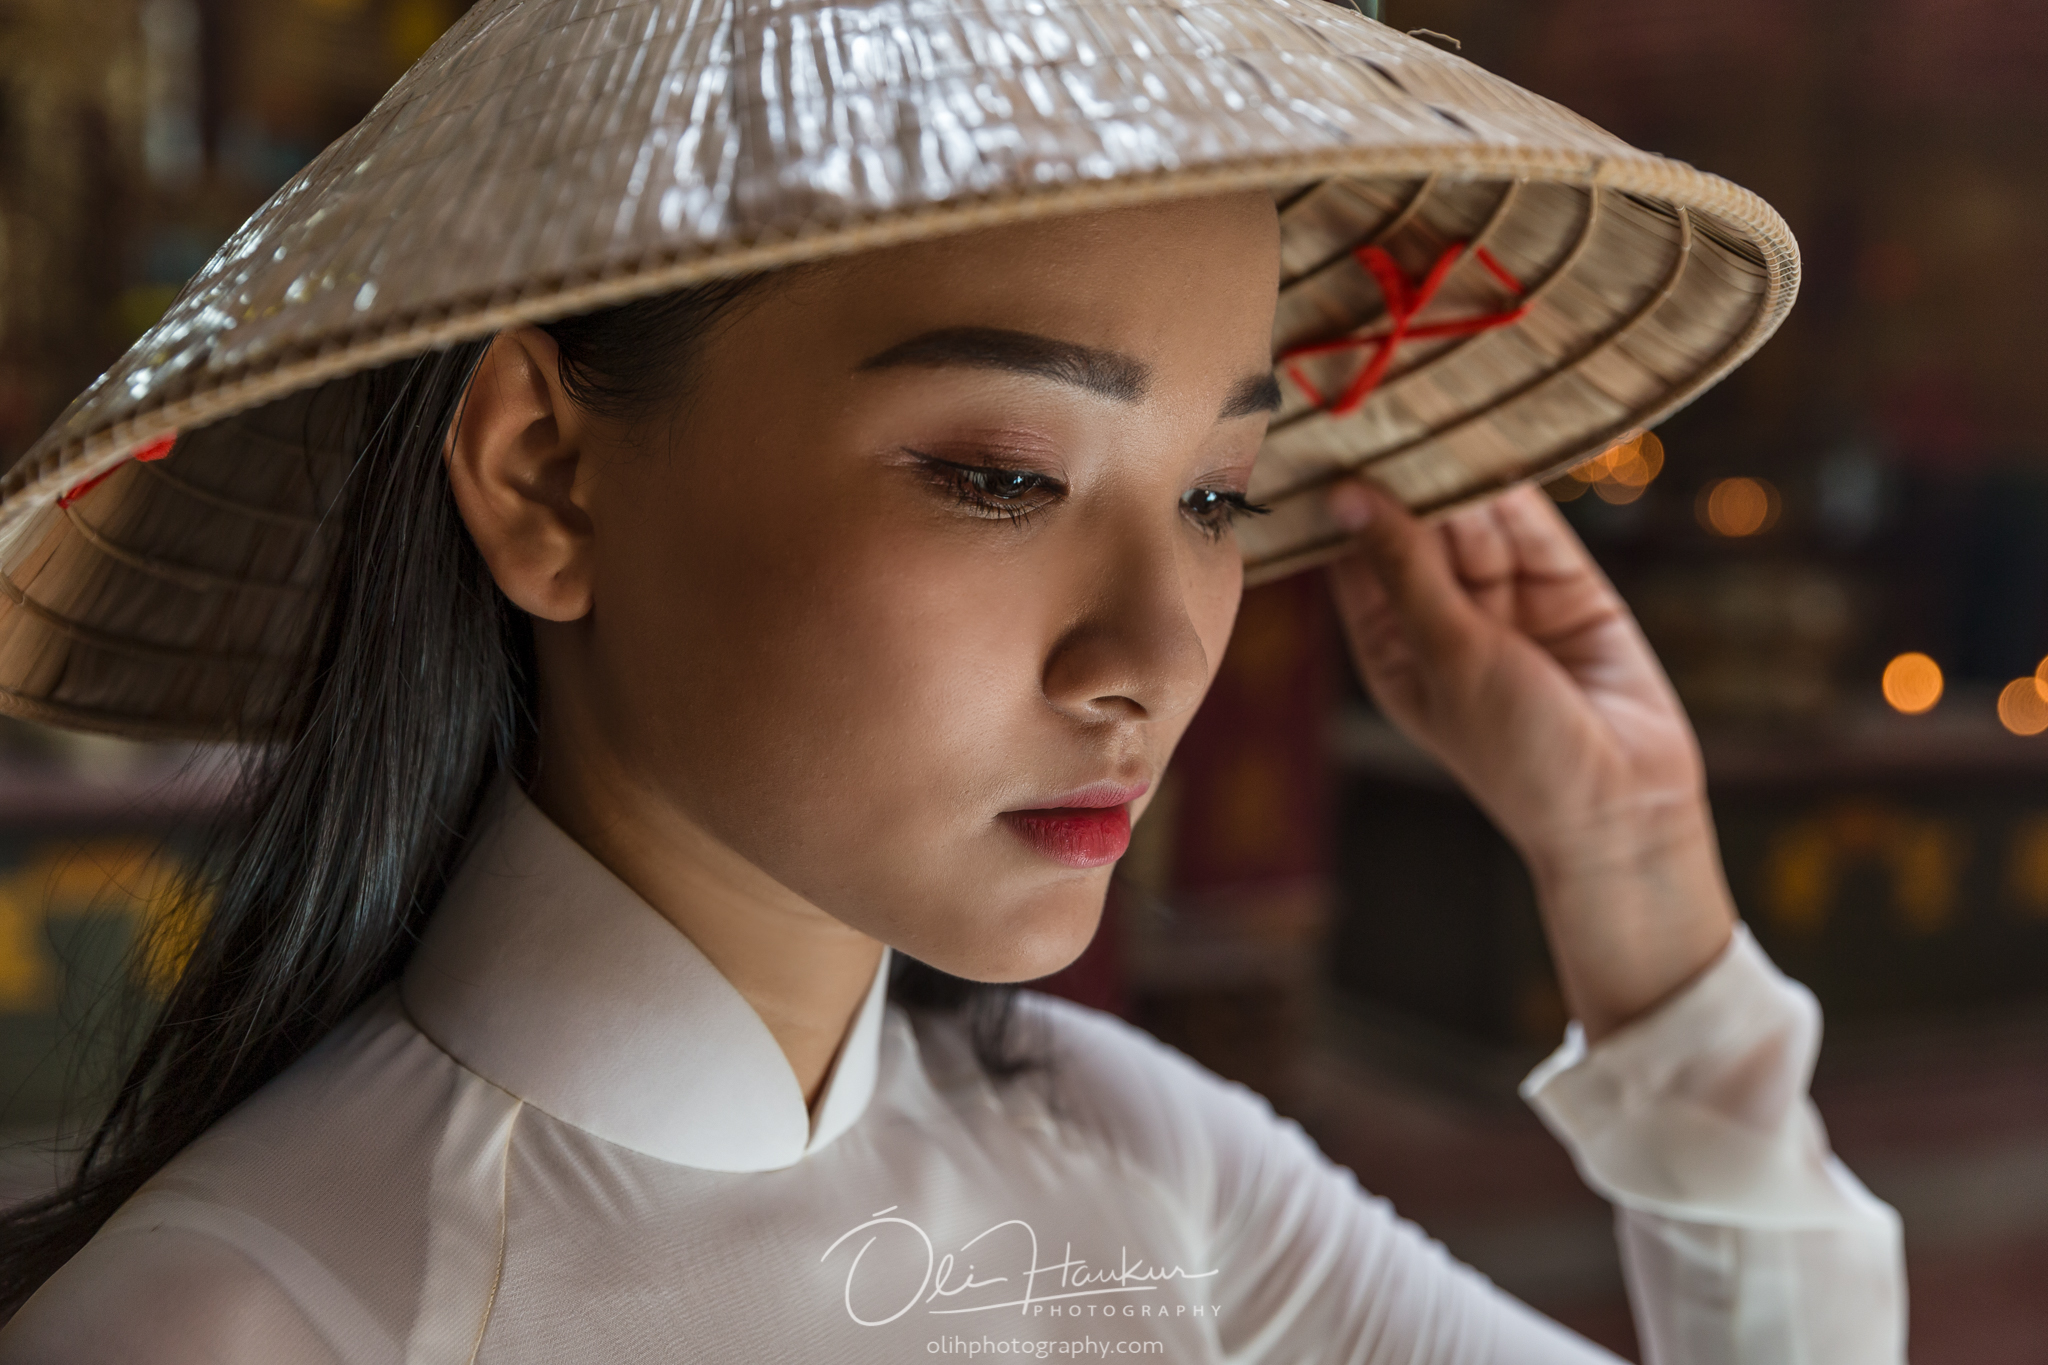 Arranged Model Shoots with beautiful 'Aodai' ladies